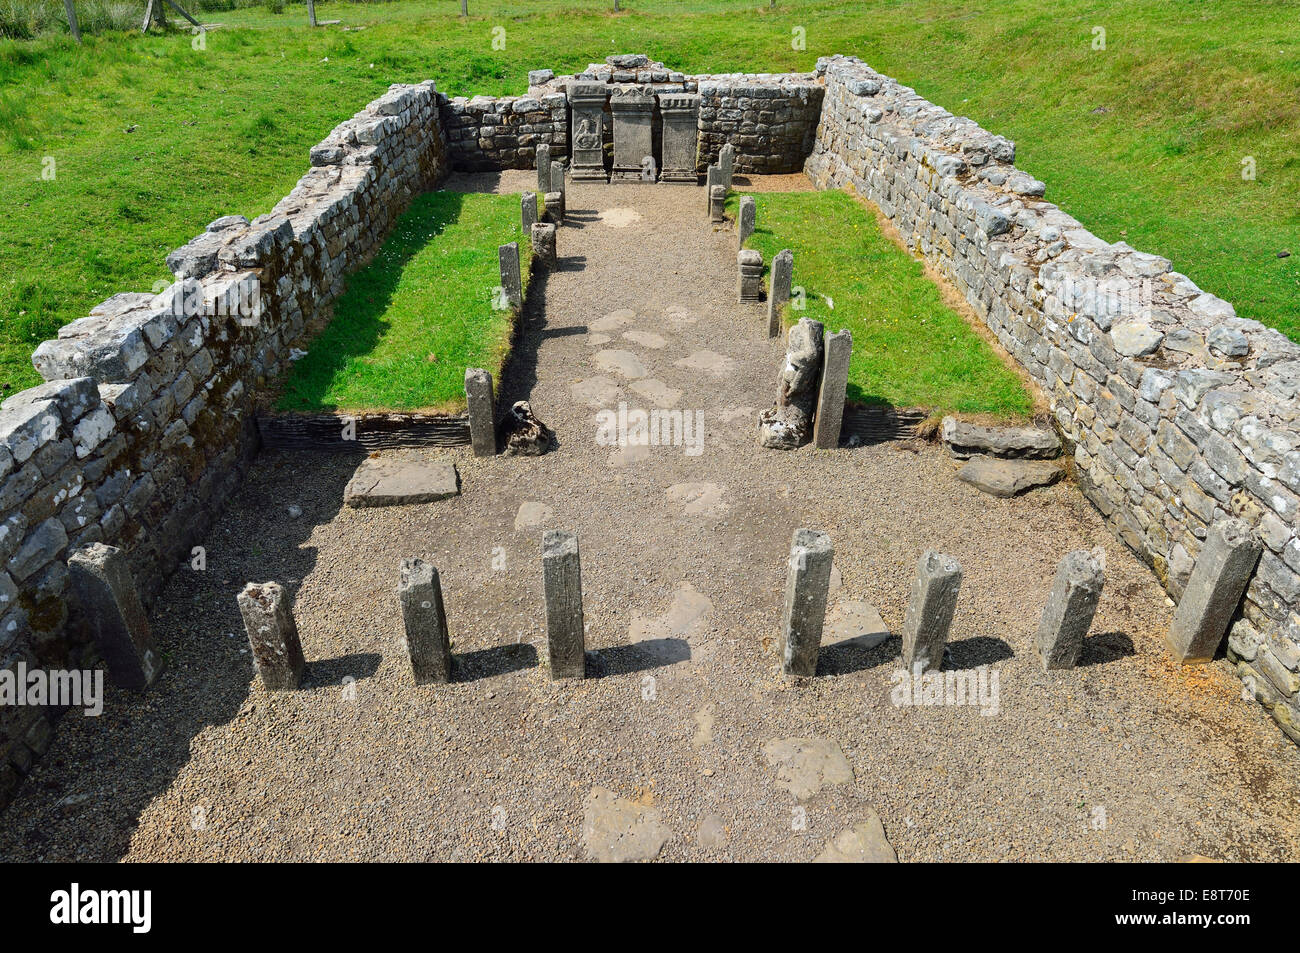 Temple of Mithras from the 3rd century, Hadrian's Wall, Carrawburgh, Northumberland, England, United Kingdom - Stock Image